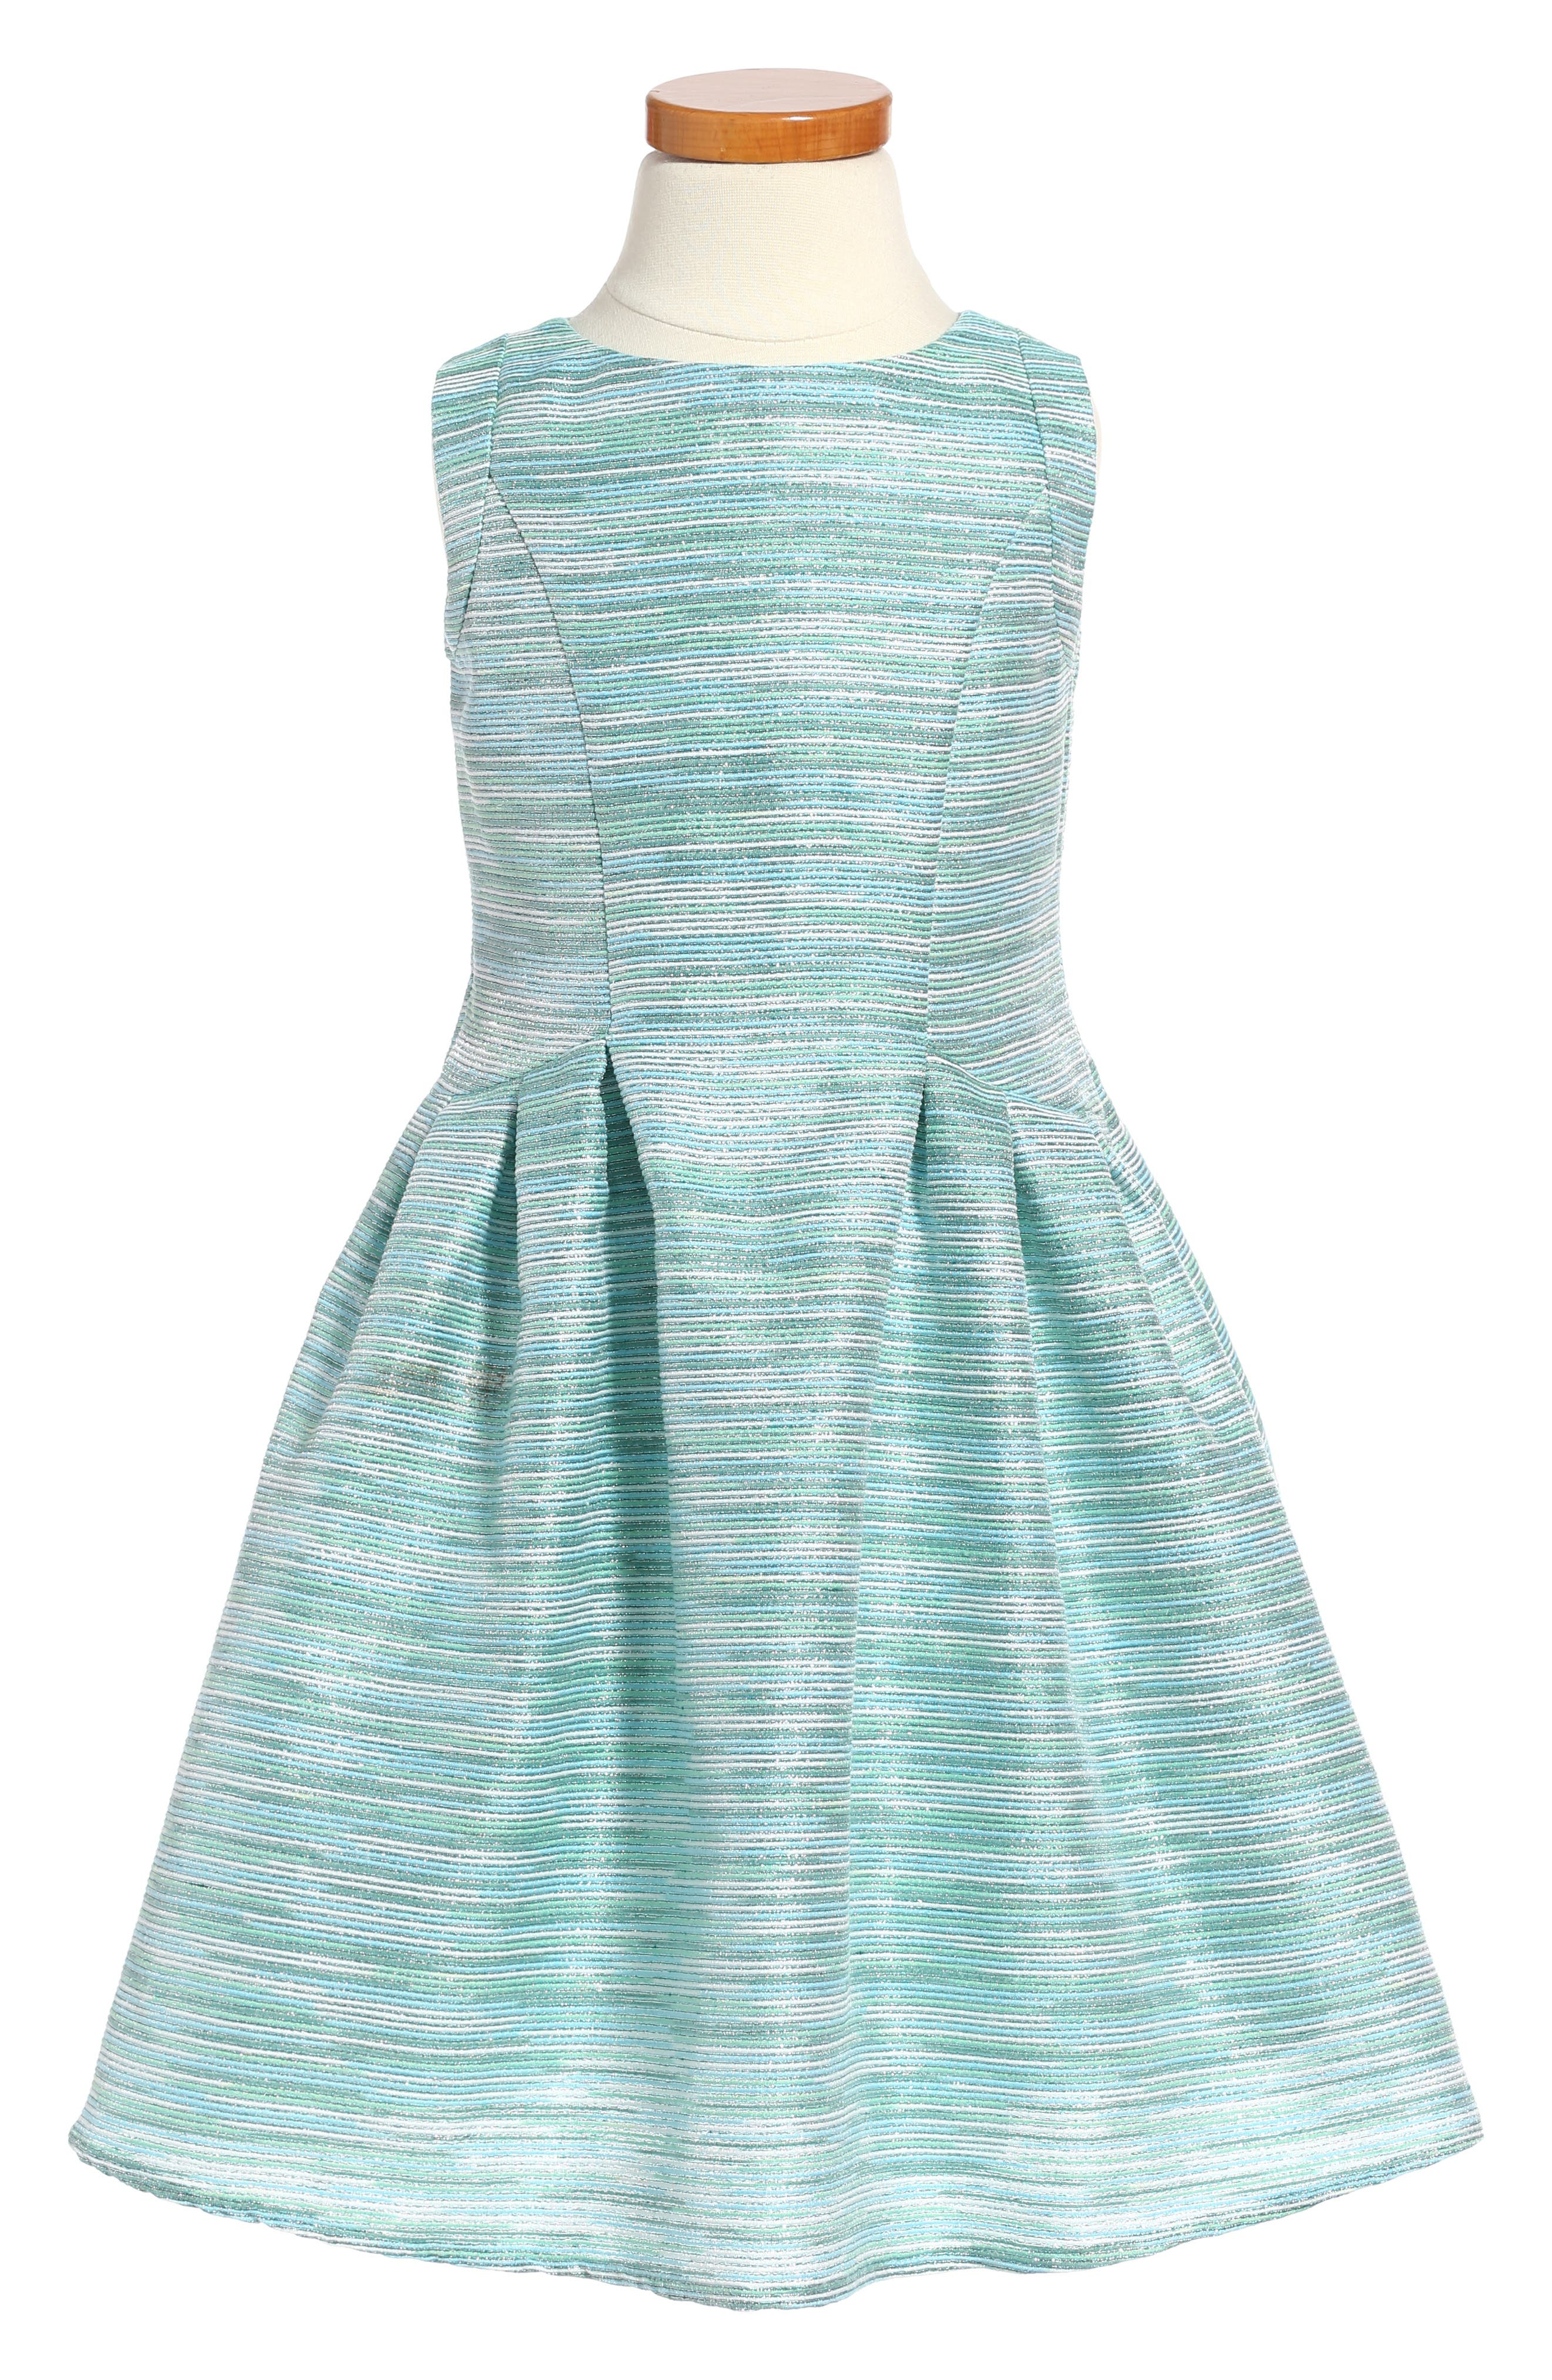 Little Angels Stripe Brocade Sleeveless Dress (Toddler Girls & Little Girls)